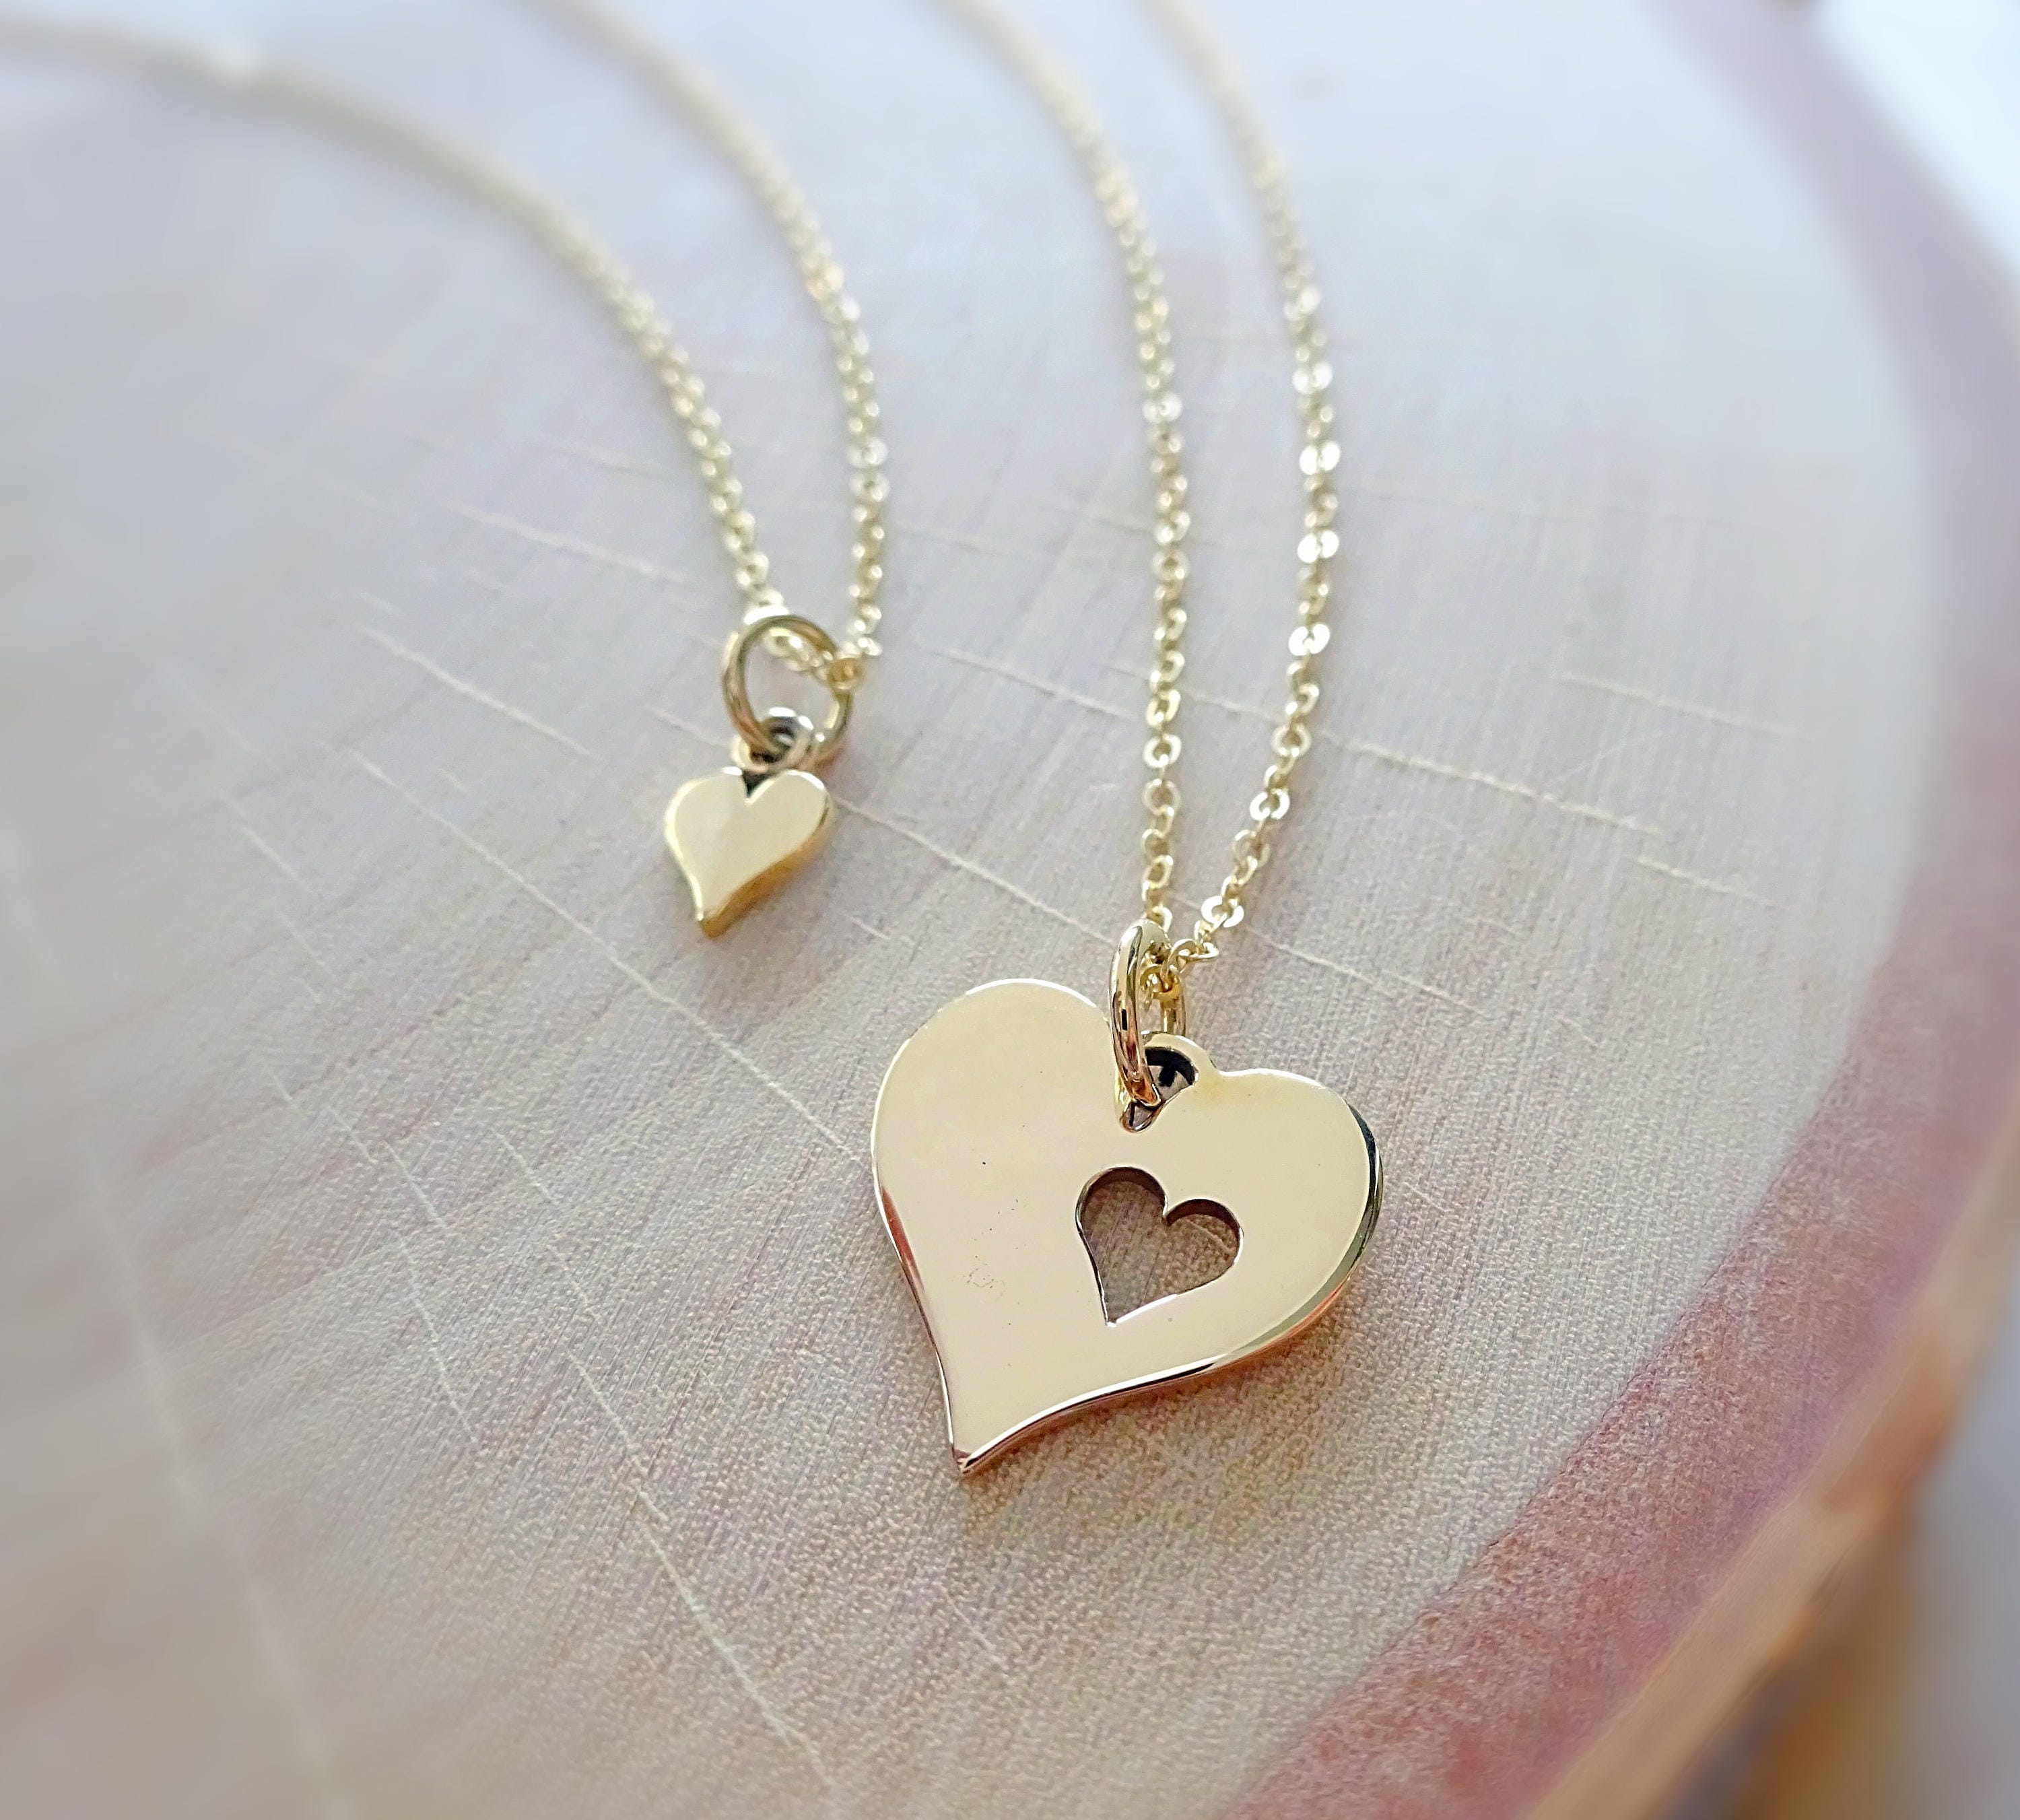 Mothers Day Necklace 14kt Gold Fill Rose Silver Mom Jewelry Mom and Child Necklace Mom of Two Necklace Mother Child Necklace Mom Gift